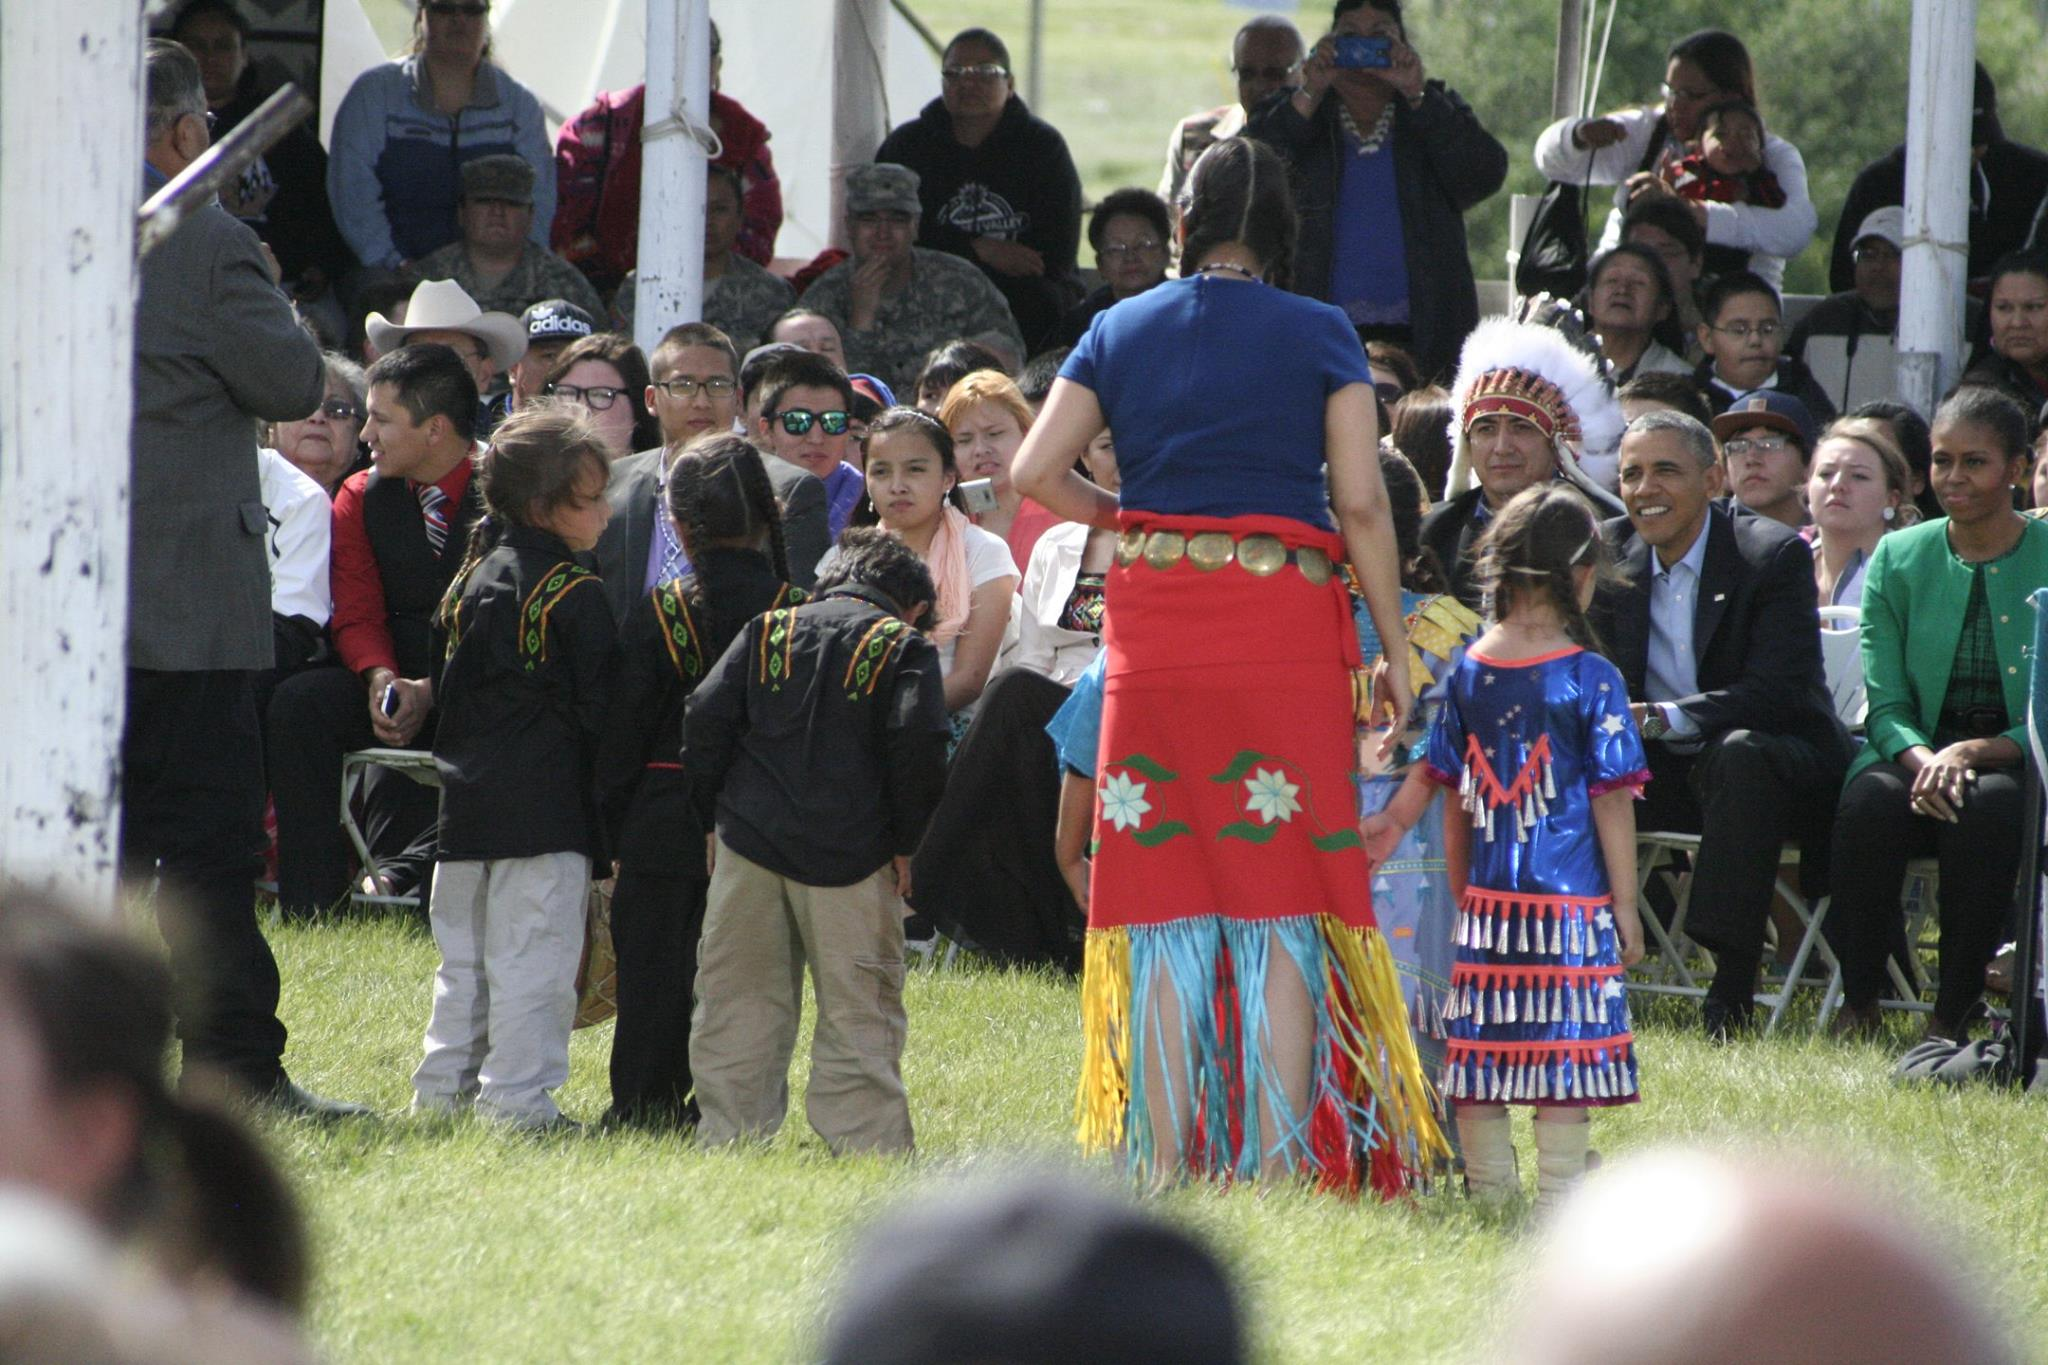 VOA: Standing Rock Sioux Tribe focuses on education for youth